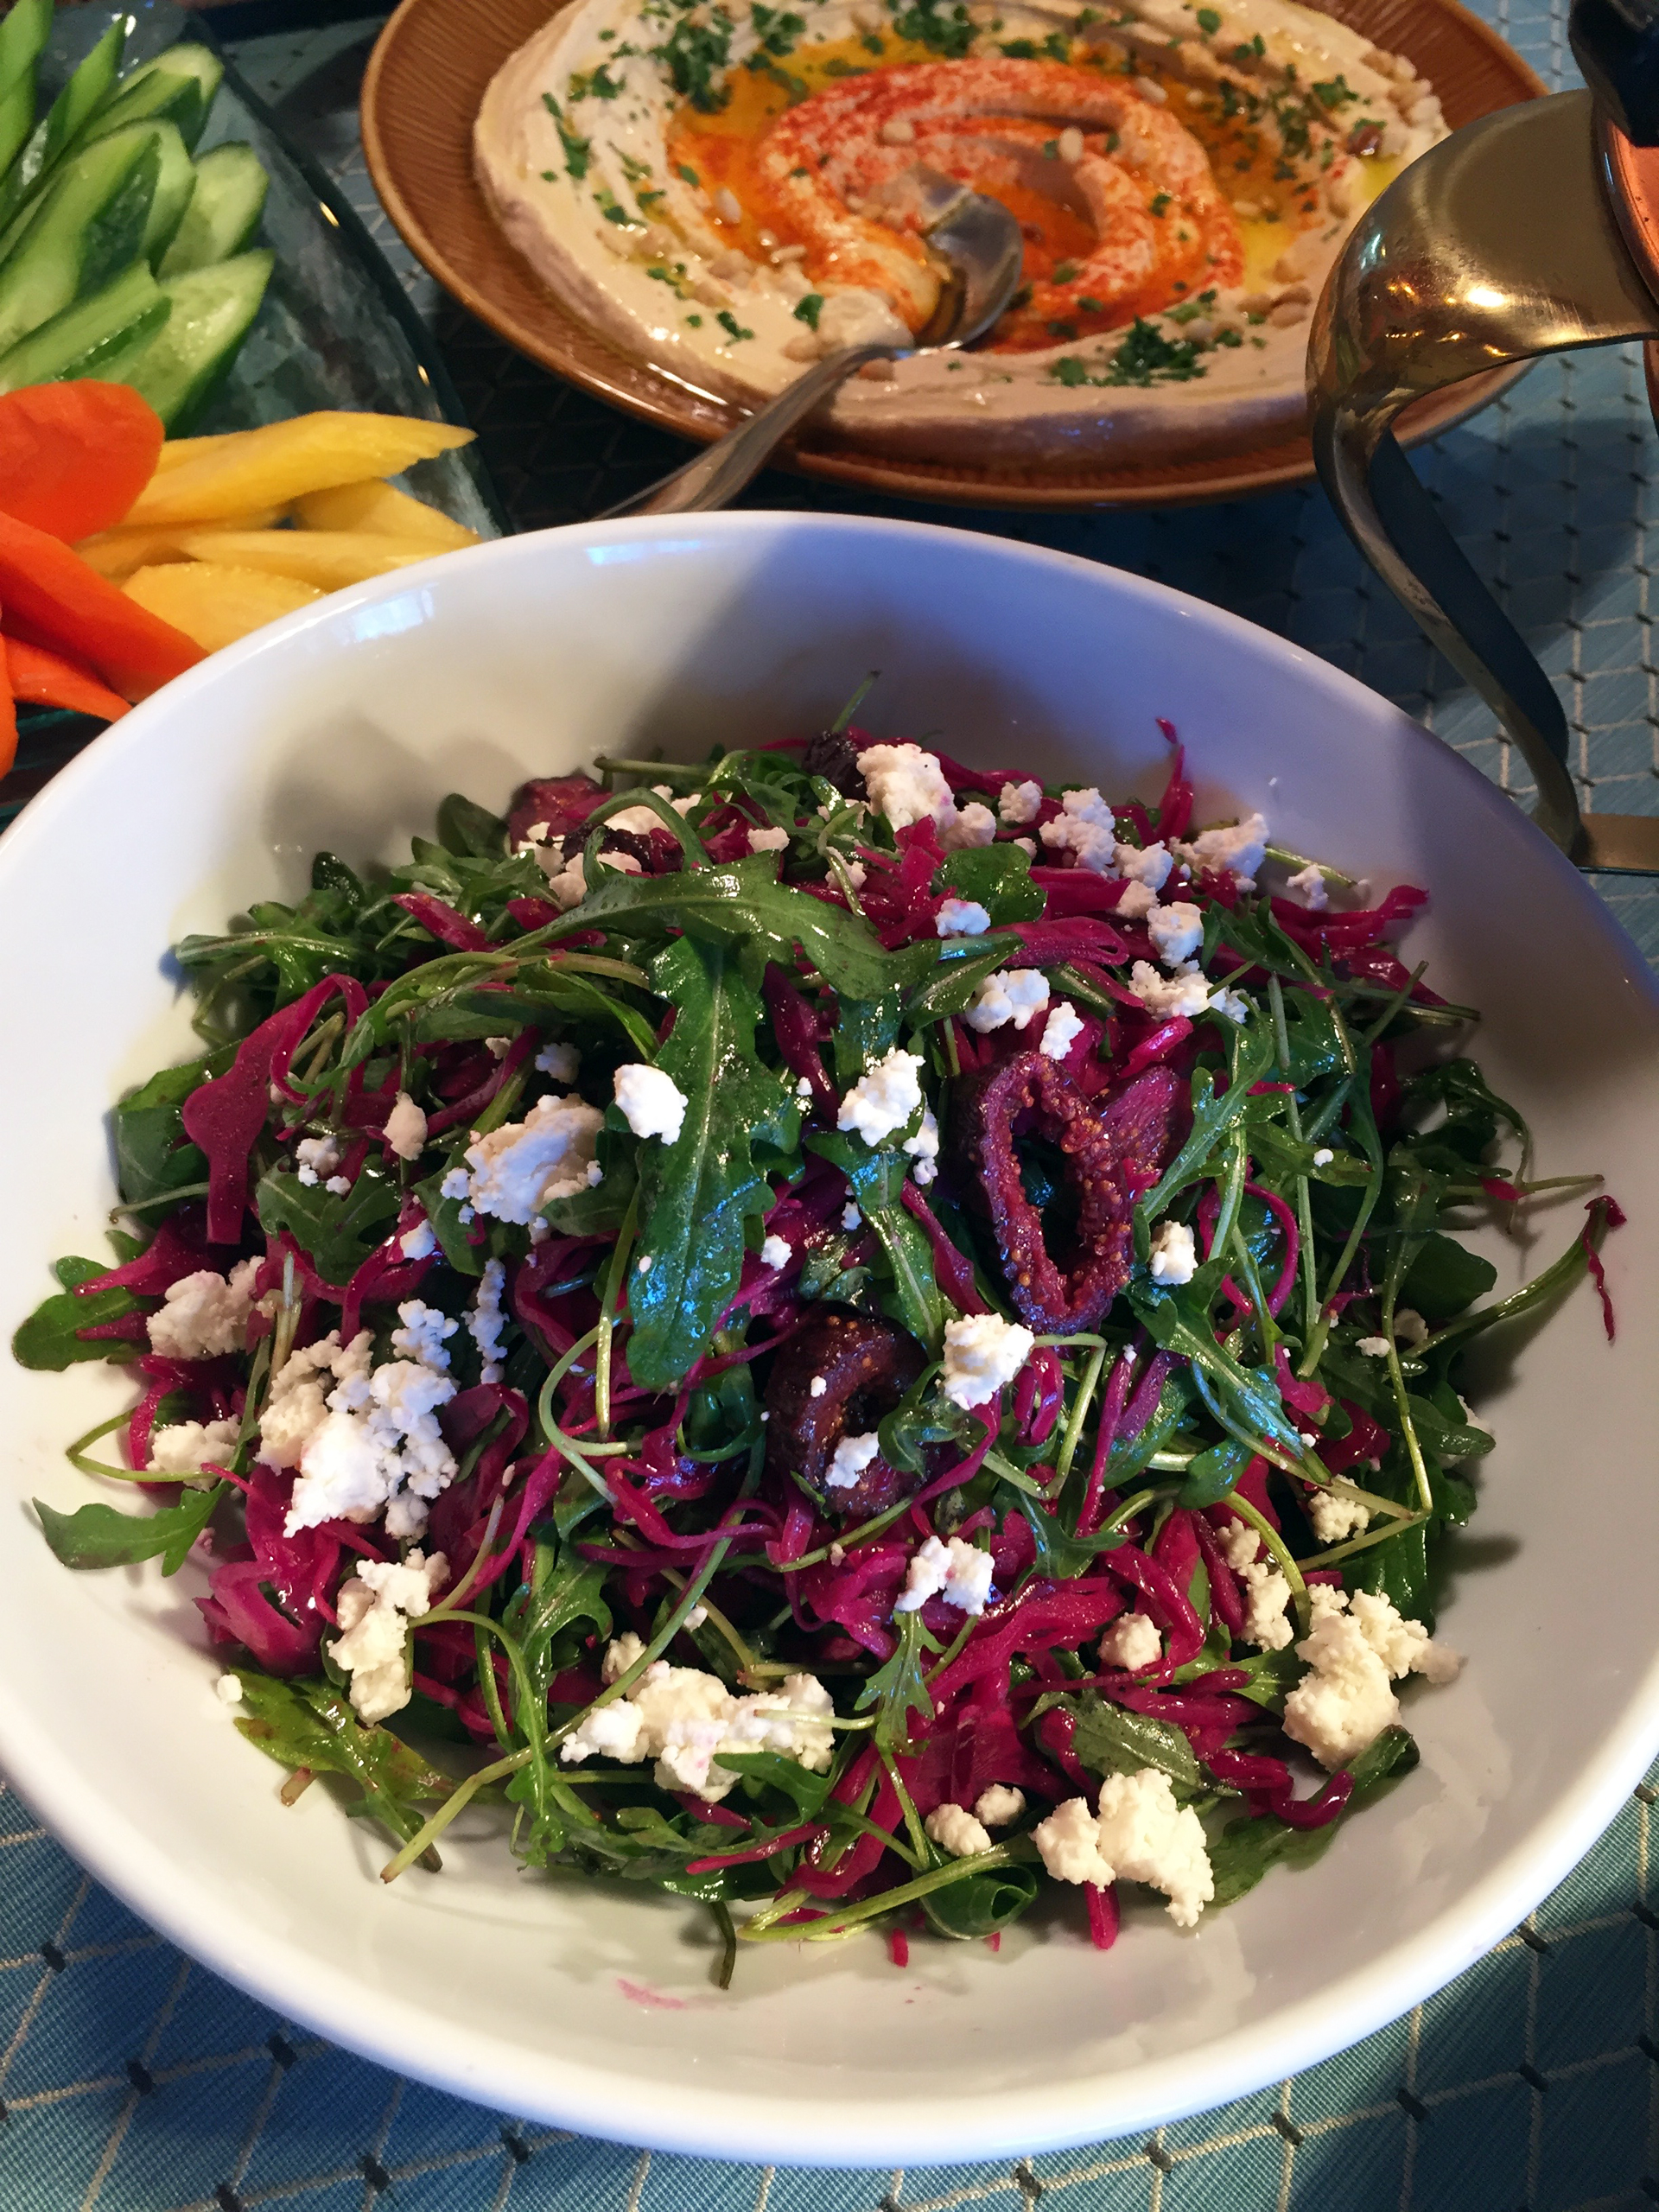 One of Ba-Bite's colorful salads: red cabbage with mung bean sprouts, dried figs, arugula and feta and the creamiest hummus.